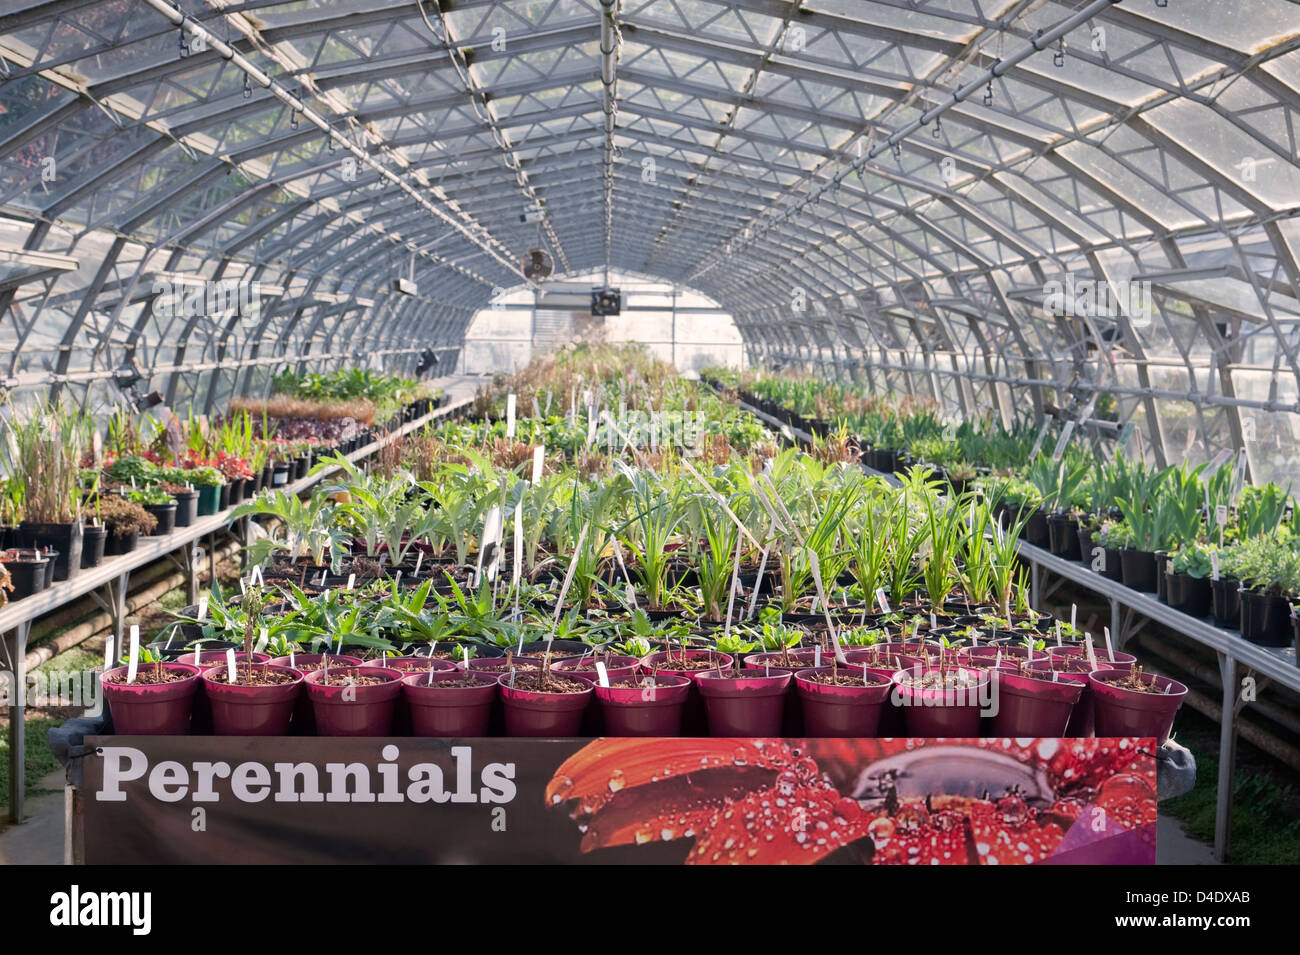 Interior of a greenhouse at a garden centre containing perennials, UK - Stock Image